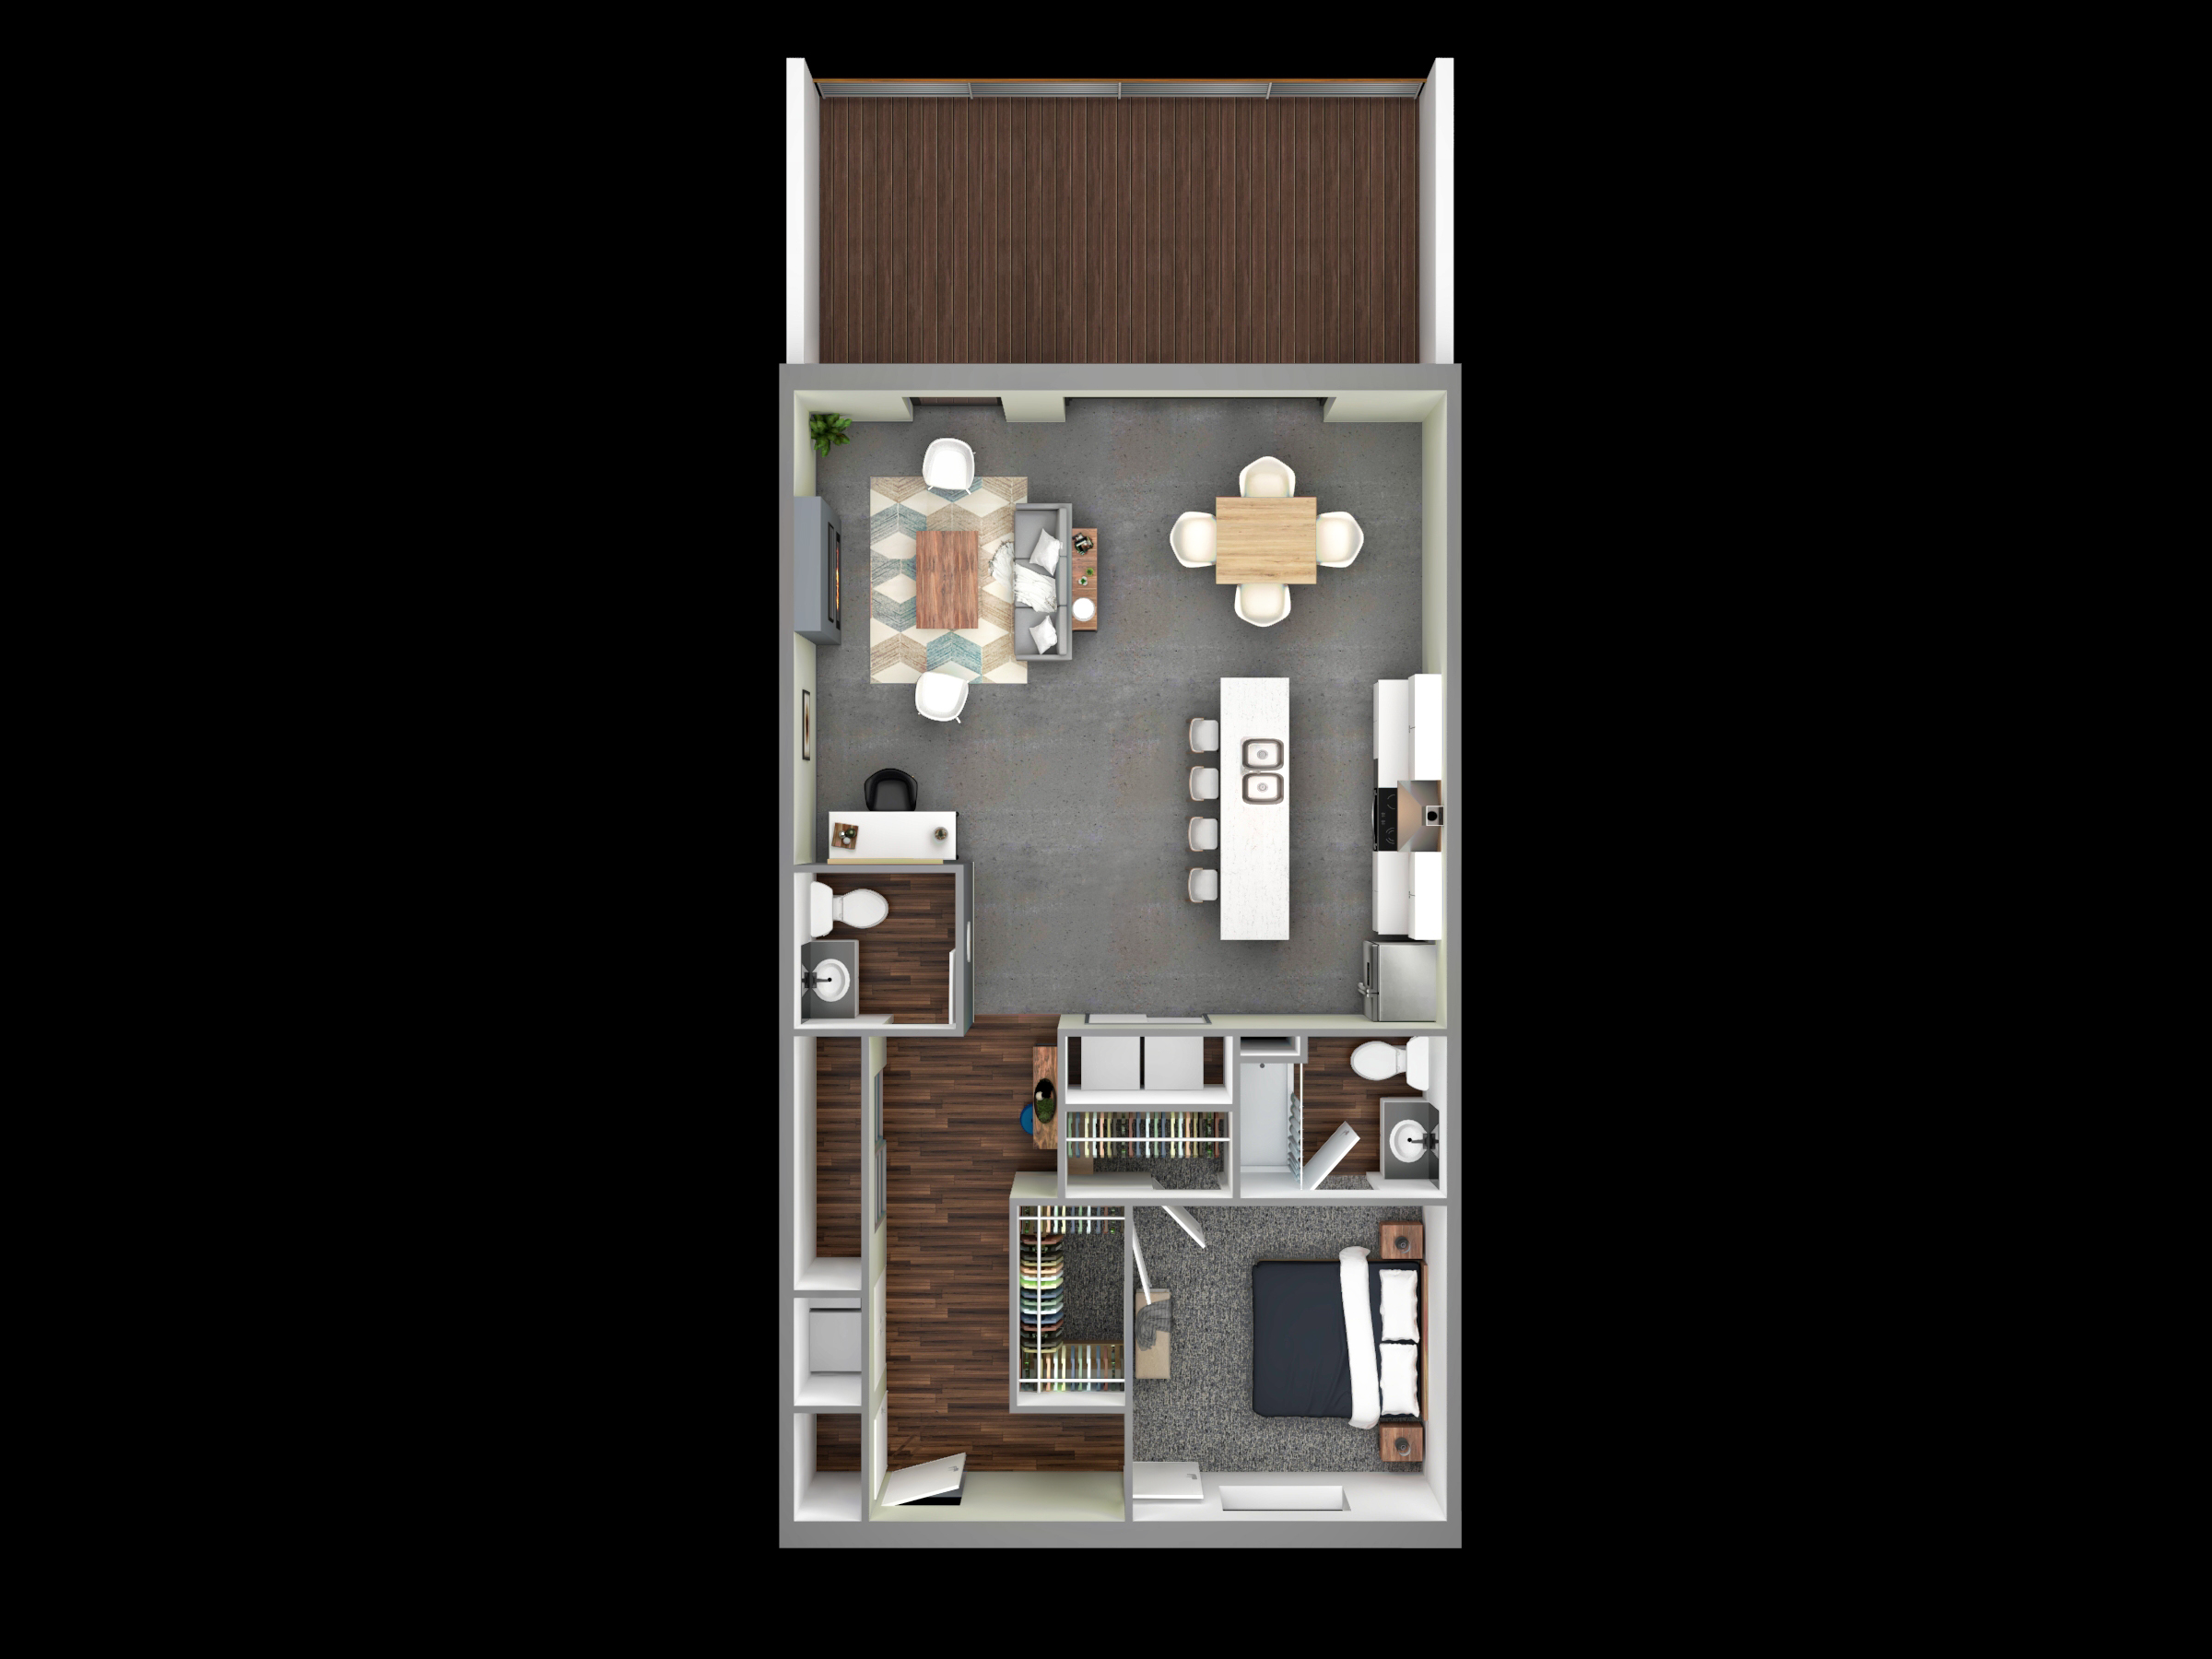 3D Plan view Rendering